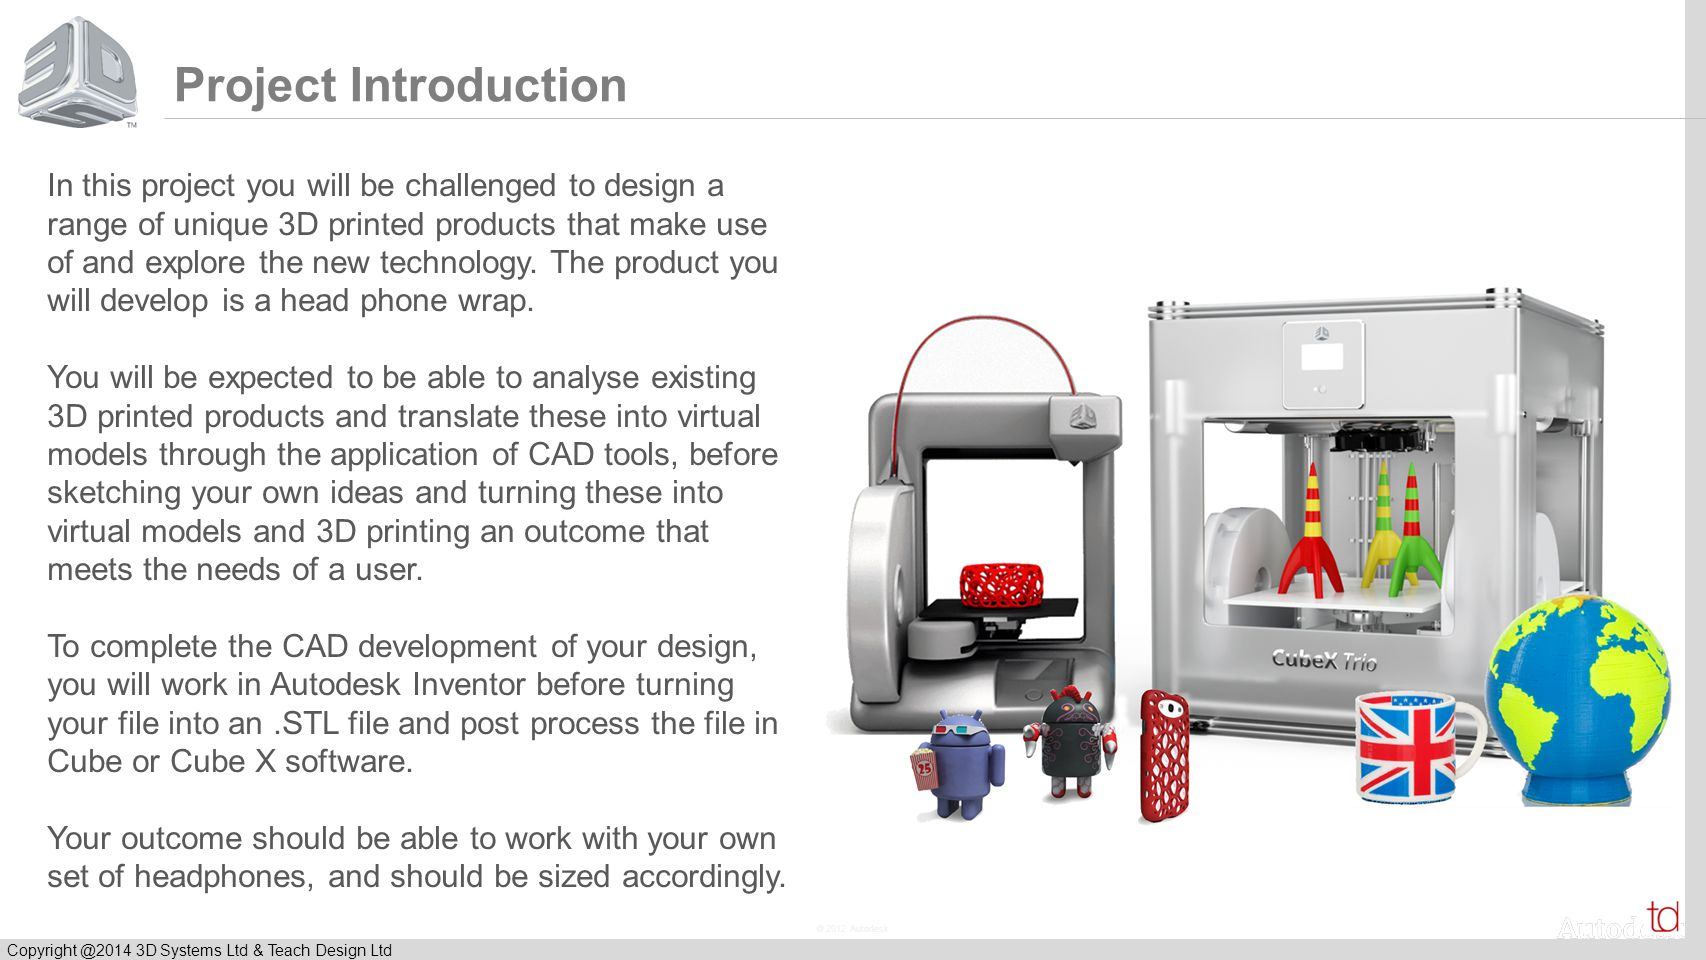 © 2012 Autodesk Copyright @2014 3D Systems Ltd & Teach Design Ltd Project Introduction In this project you will be challenged to design a range of uni